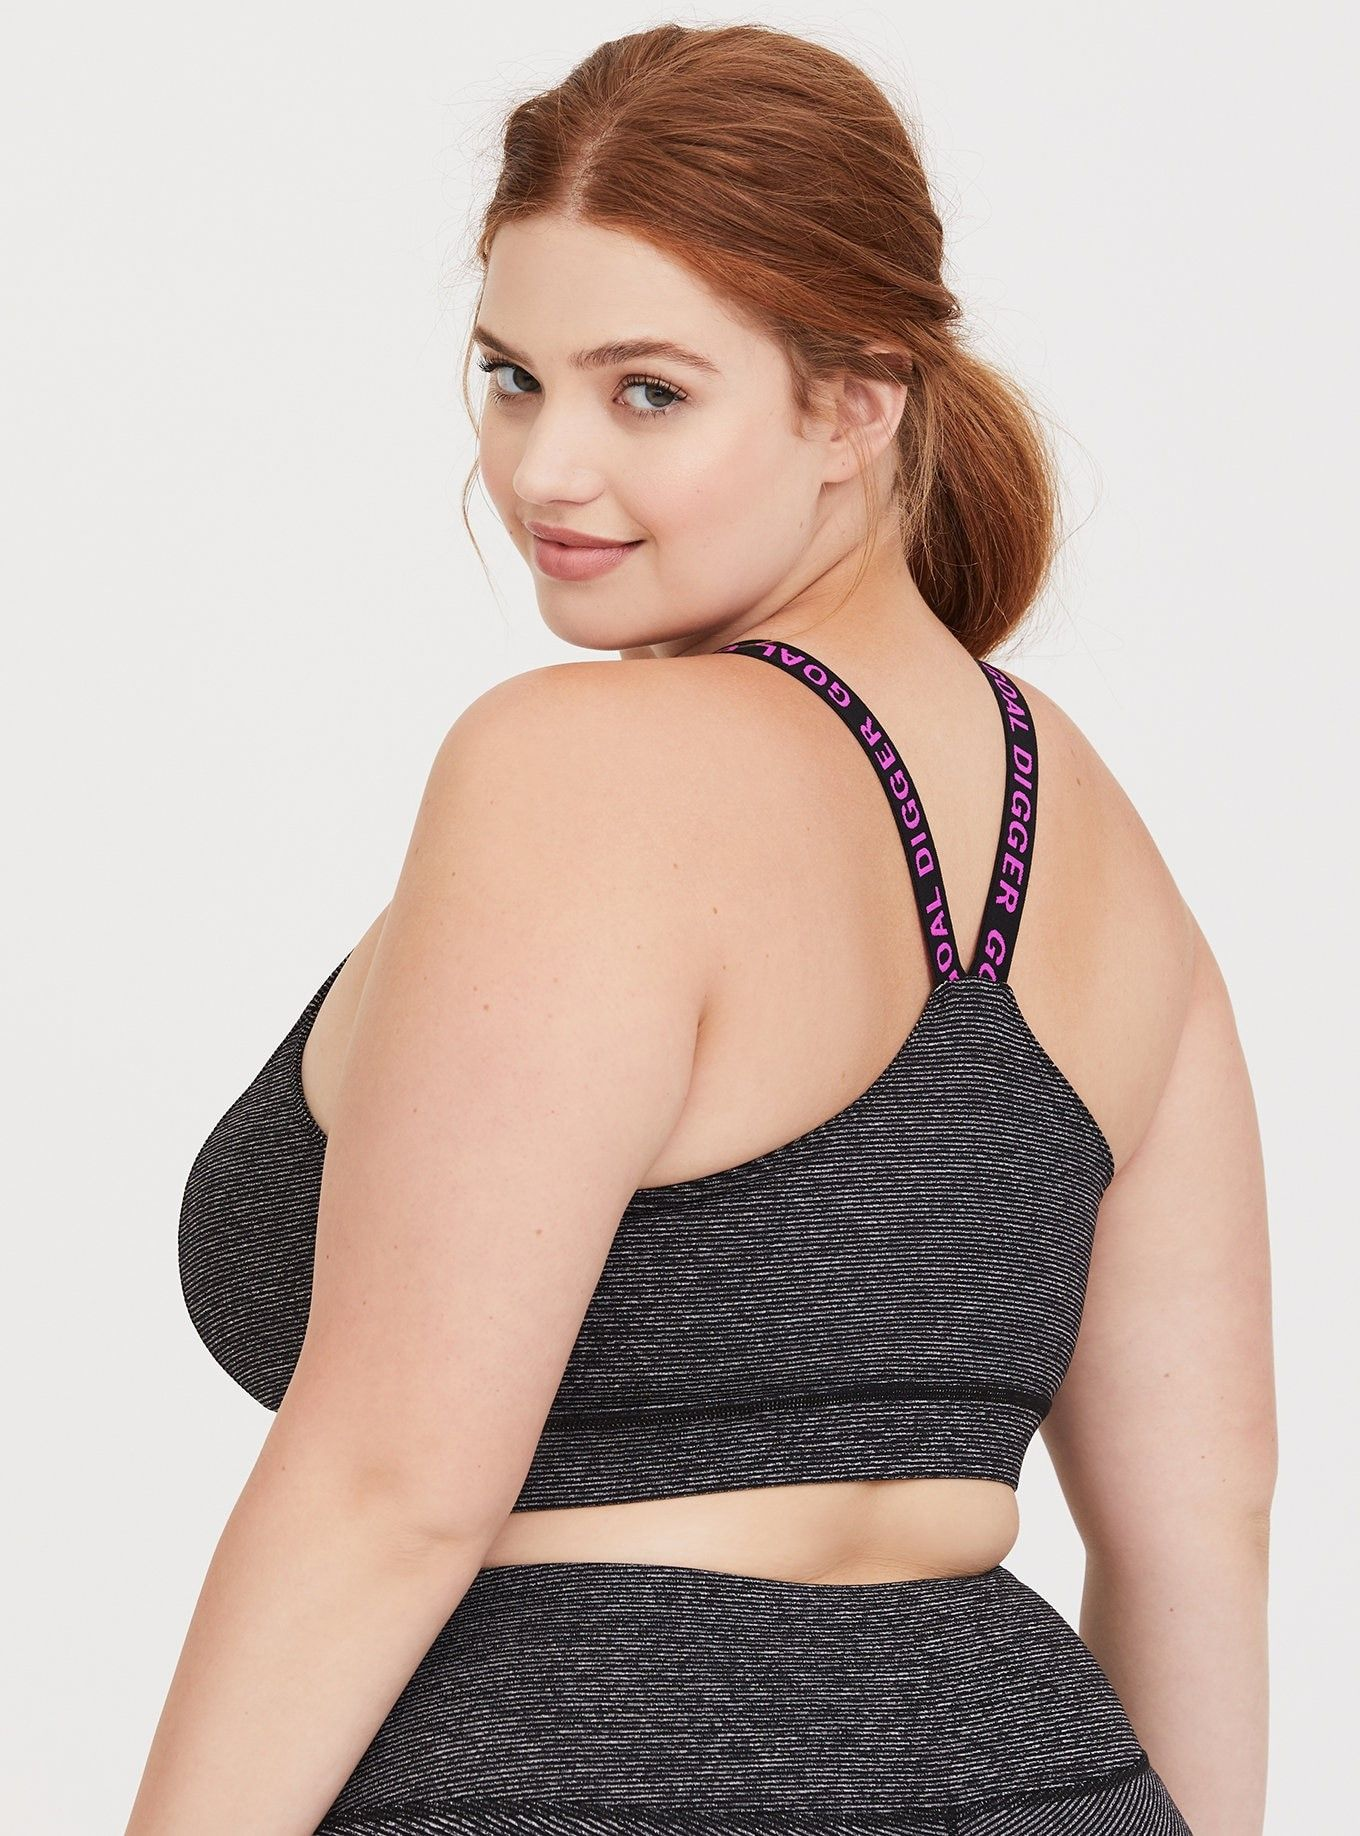 1aa13bede Space Dye Goal Digger Sports Bra - A space dye sports bra has  moisture-wicking capabilities and comfortable stretchy straps that make it  an effortless all ...